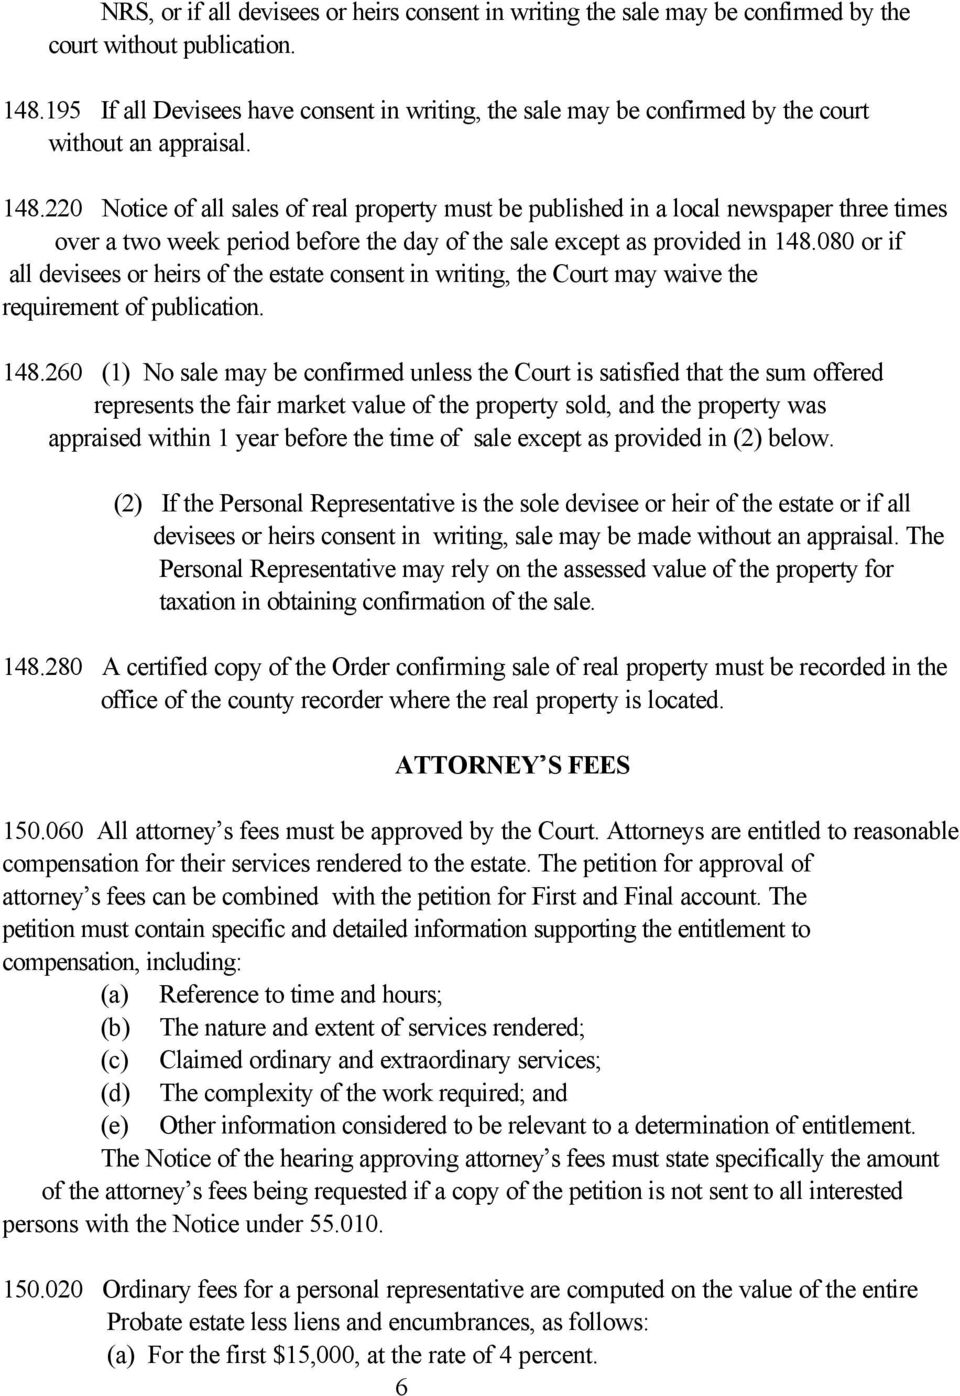 Synopsis of Nevada Probate Law  Don W  Ashworth Probate Commissioner